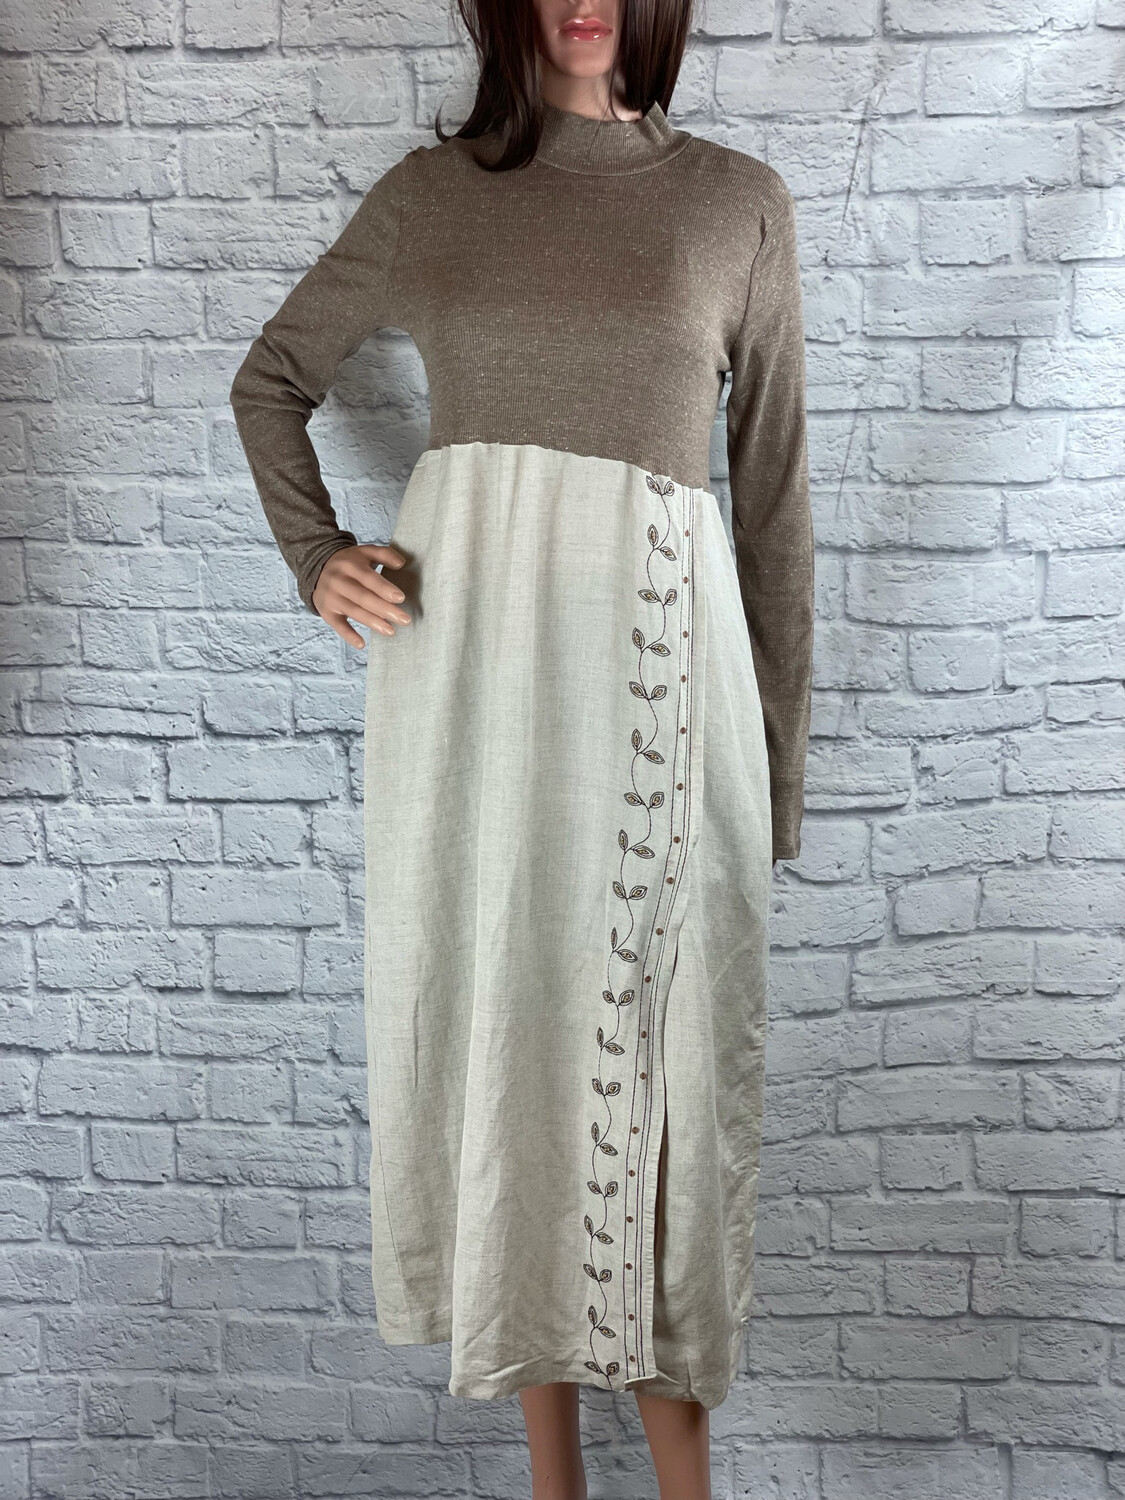 S Threads Upcycled Dress High Neck Long Sleeve Size M/L/XL